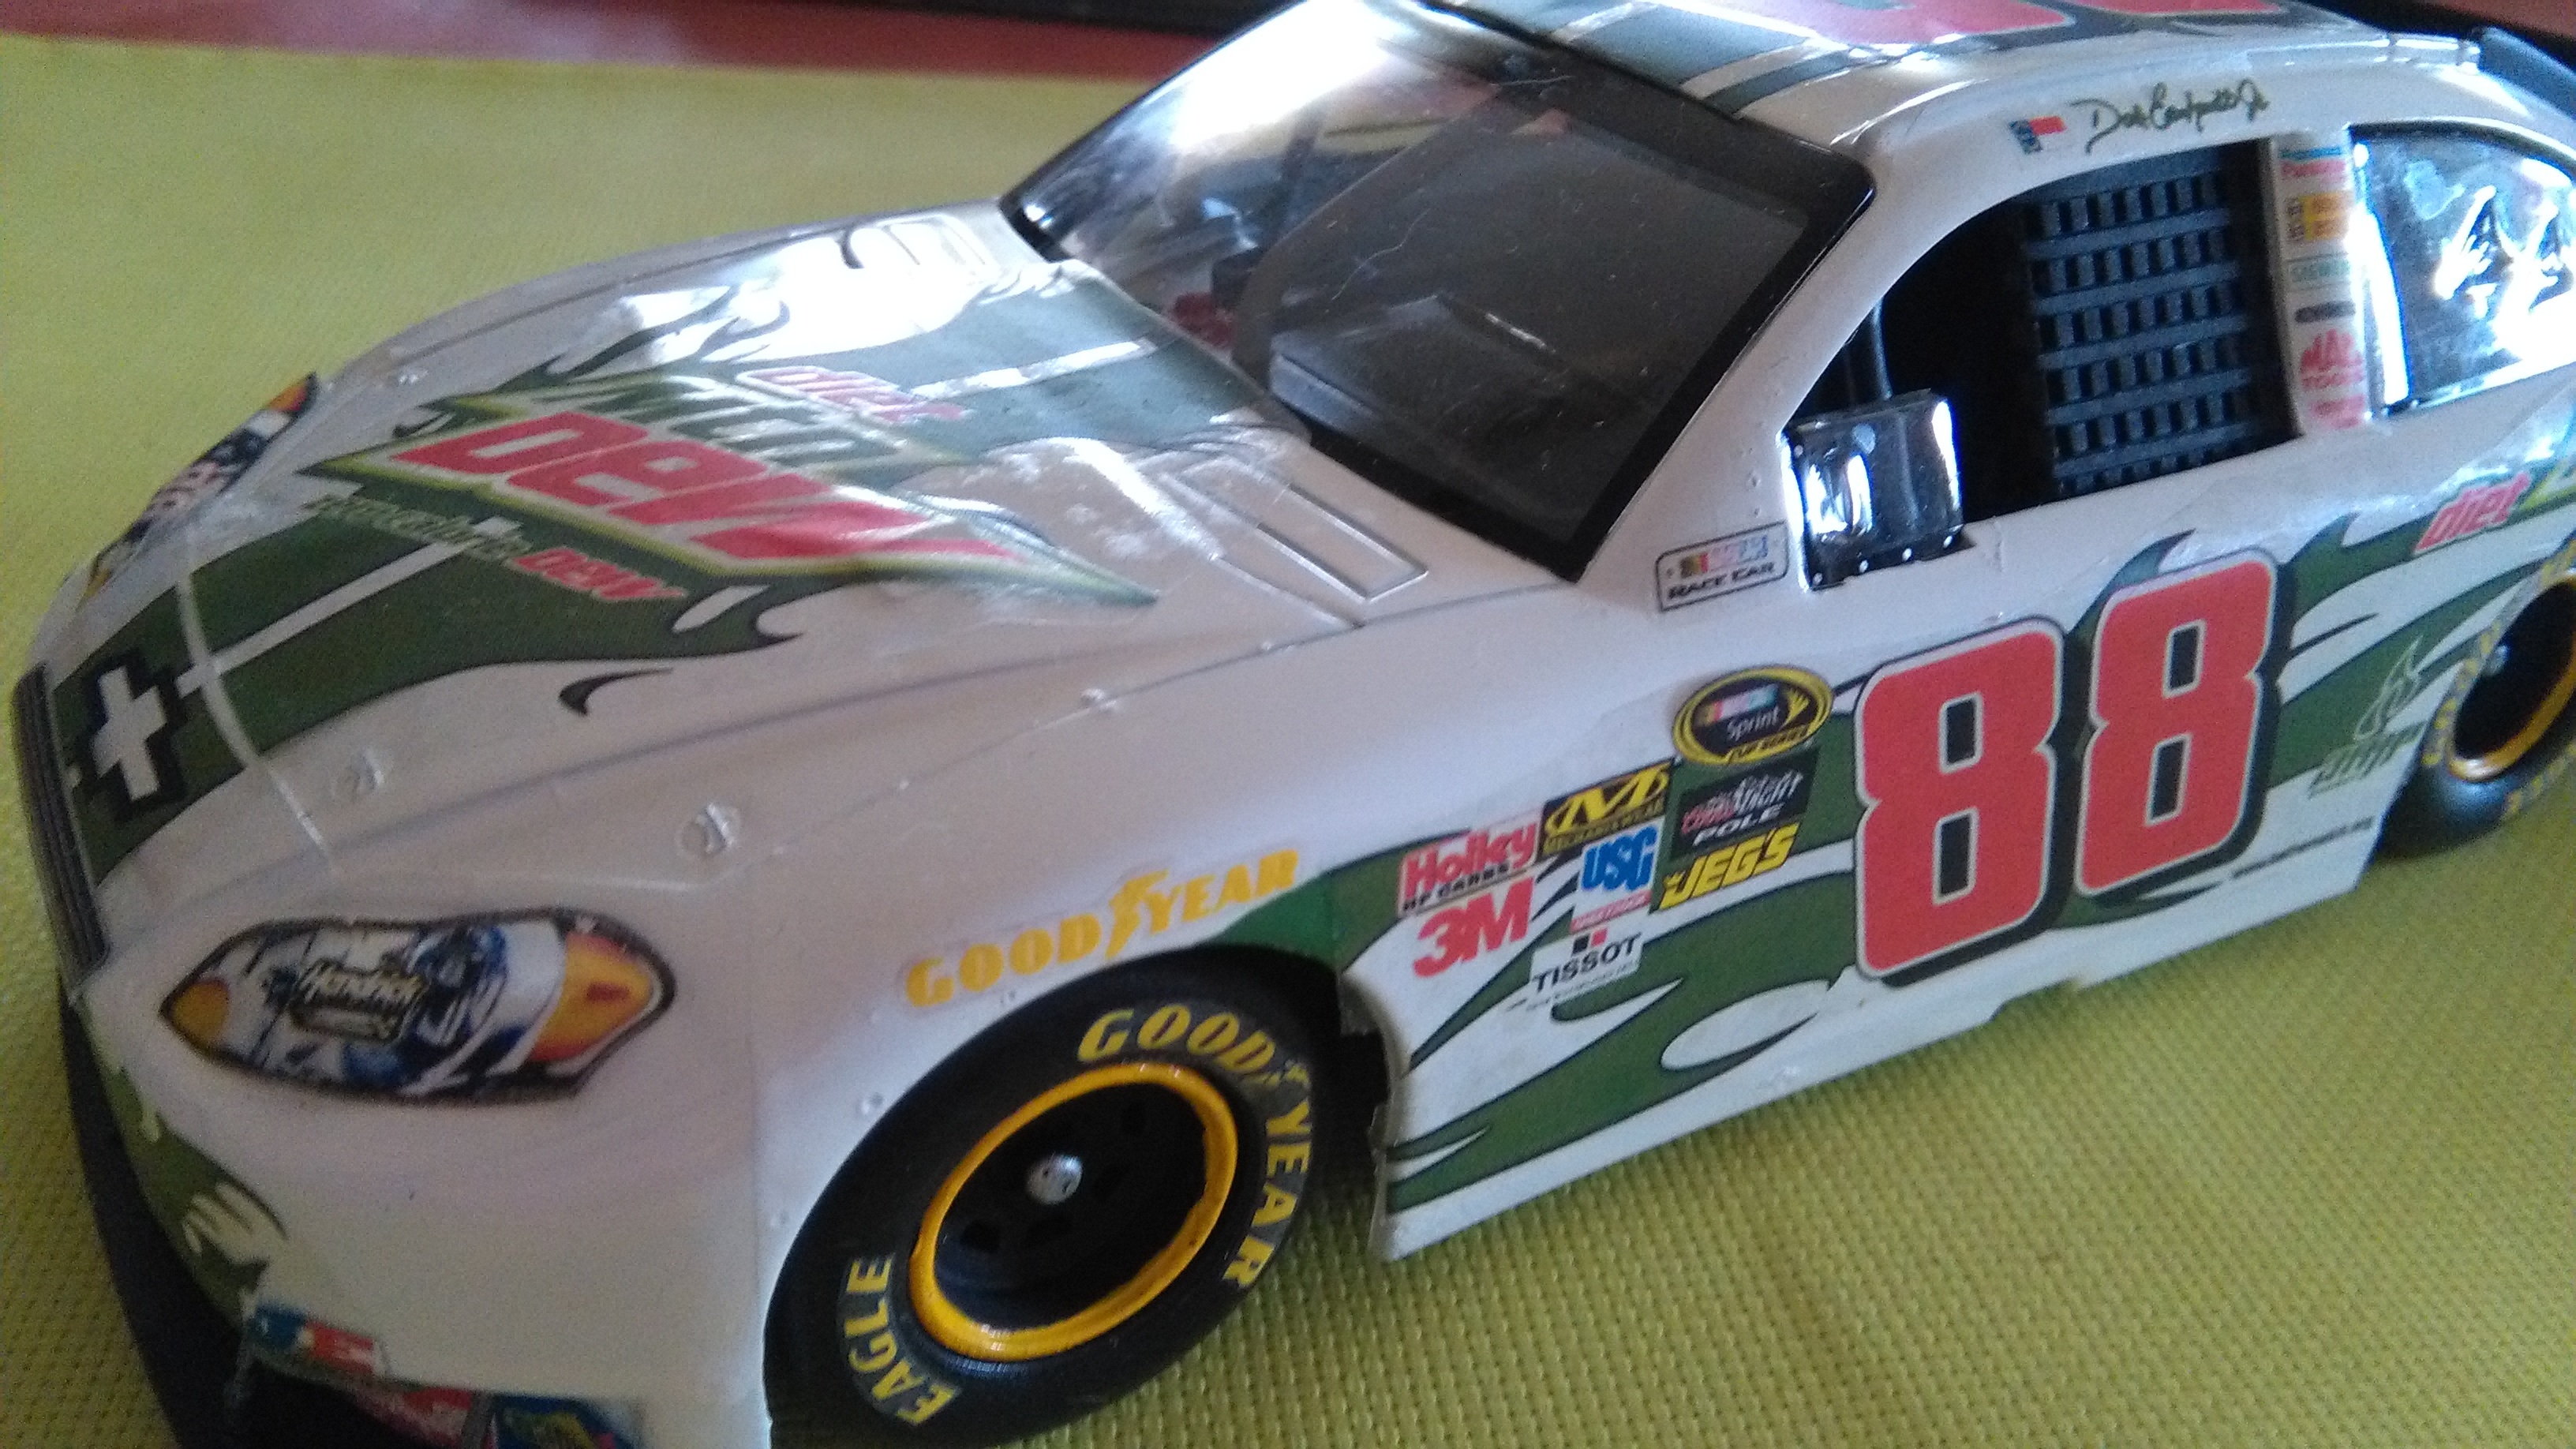 Chevy Impala 2010 #88 Earnhardt jr Mountain dew diet 553812IMG20160320150446